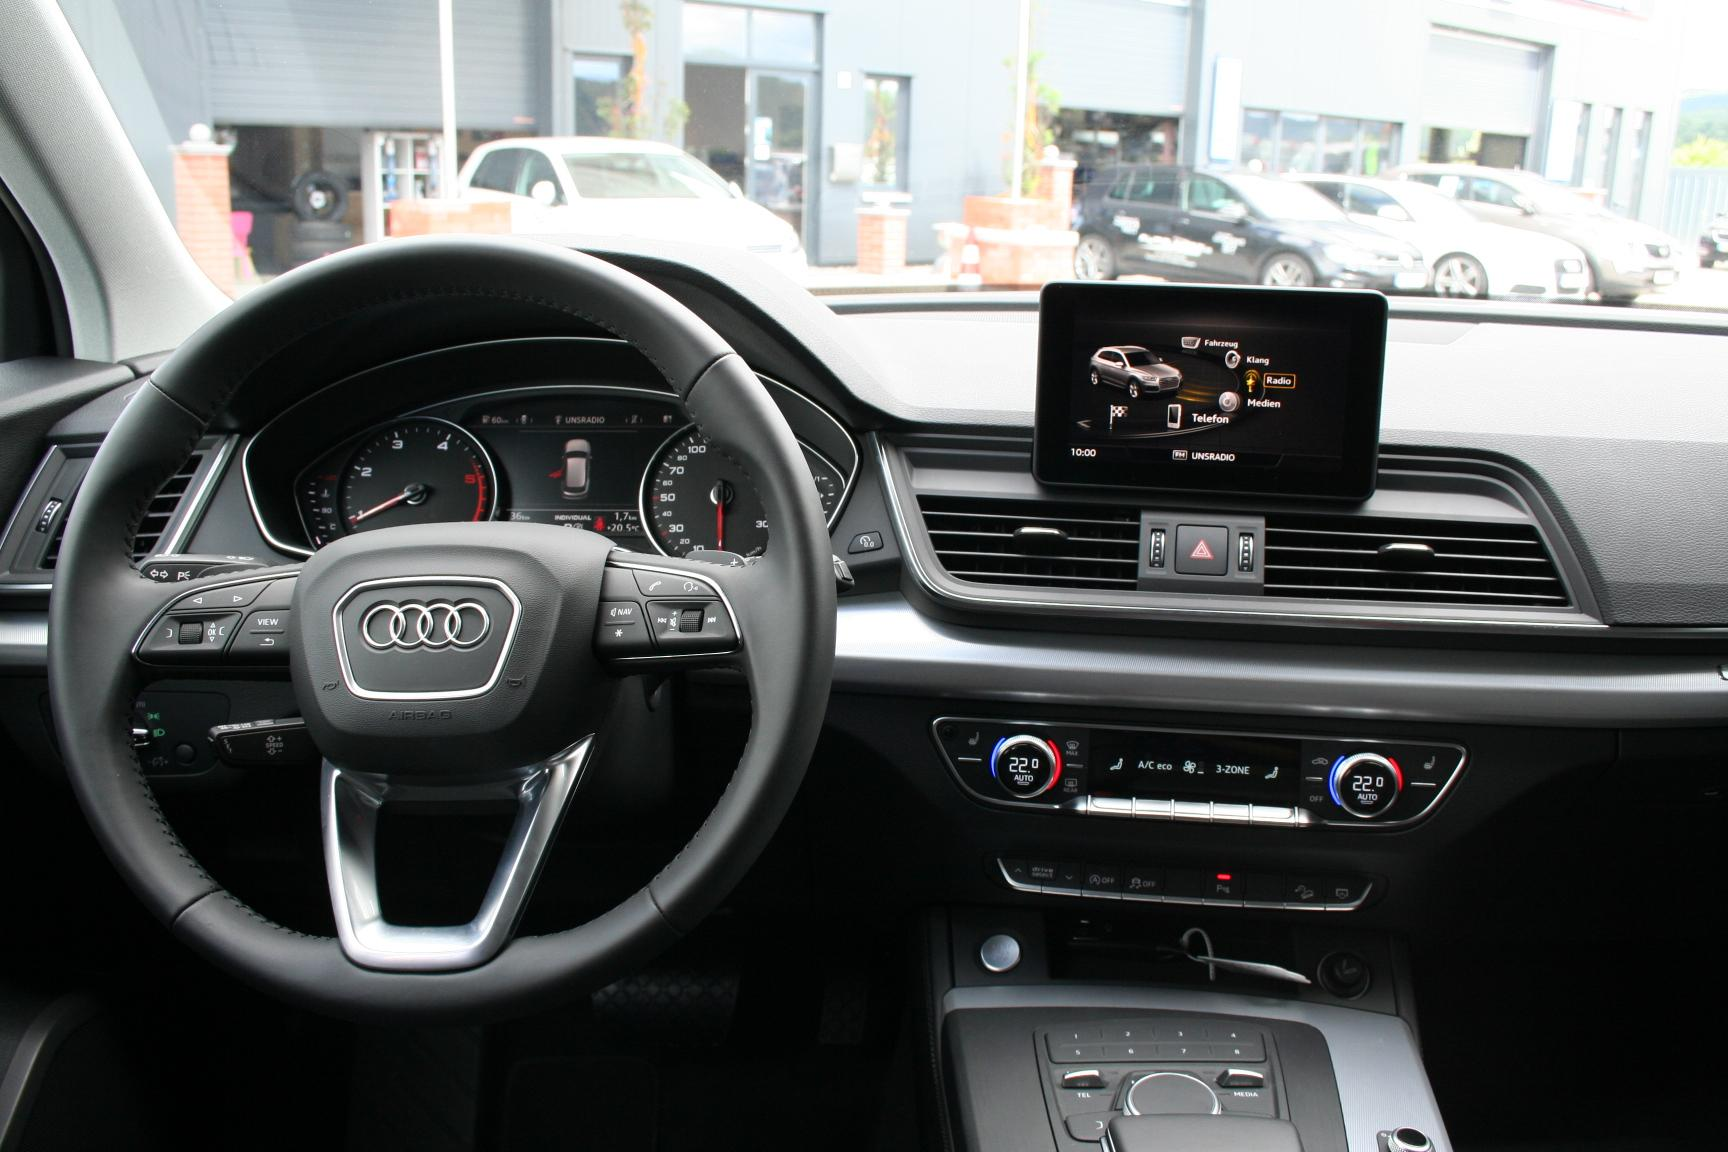 audi q5 neues modell 2 0 tdi 190 ps quattro s tronic. Black Bedroom Furniture Sets. Home Design Ideas